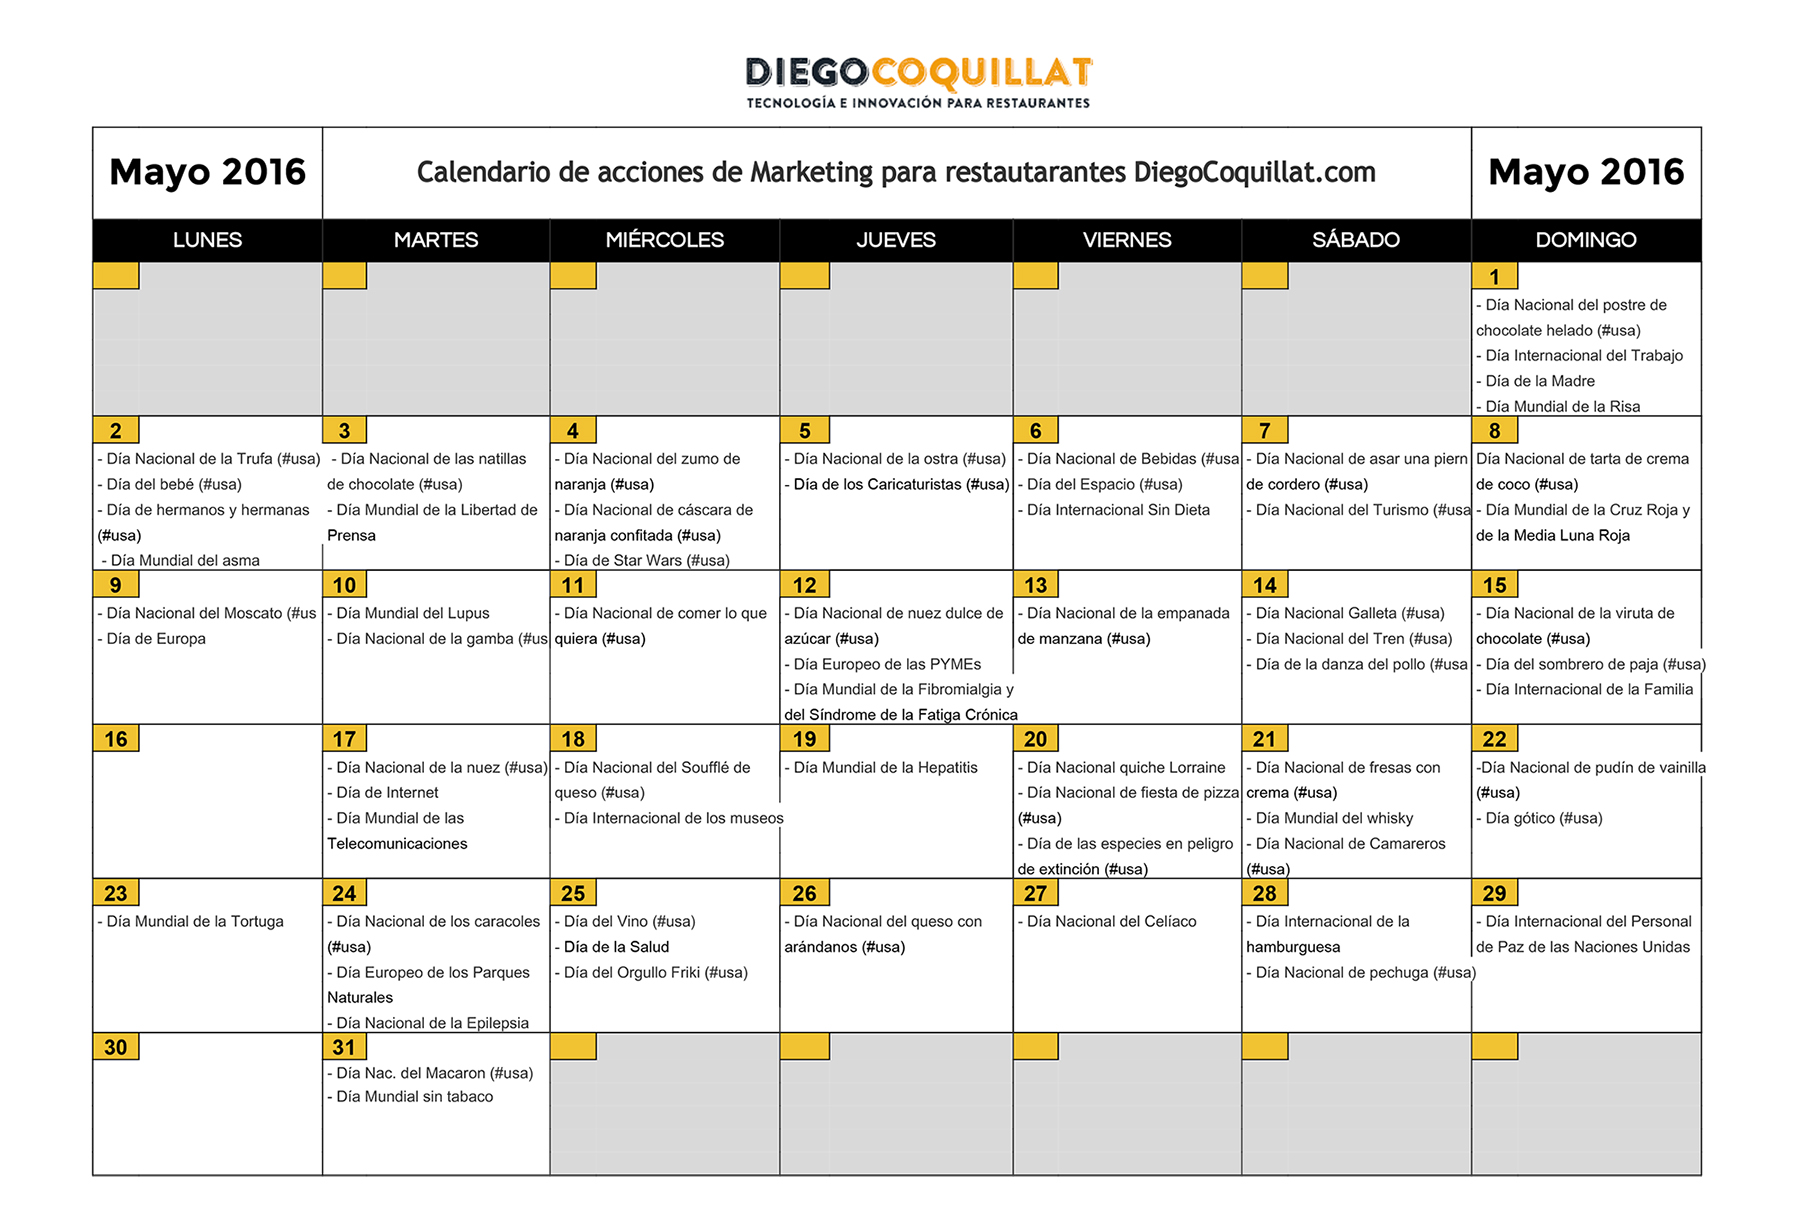 Calendario acciones de Marketing DiegoCoquillat.com-Mayo2016